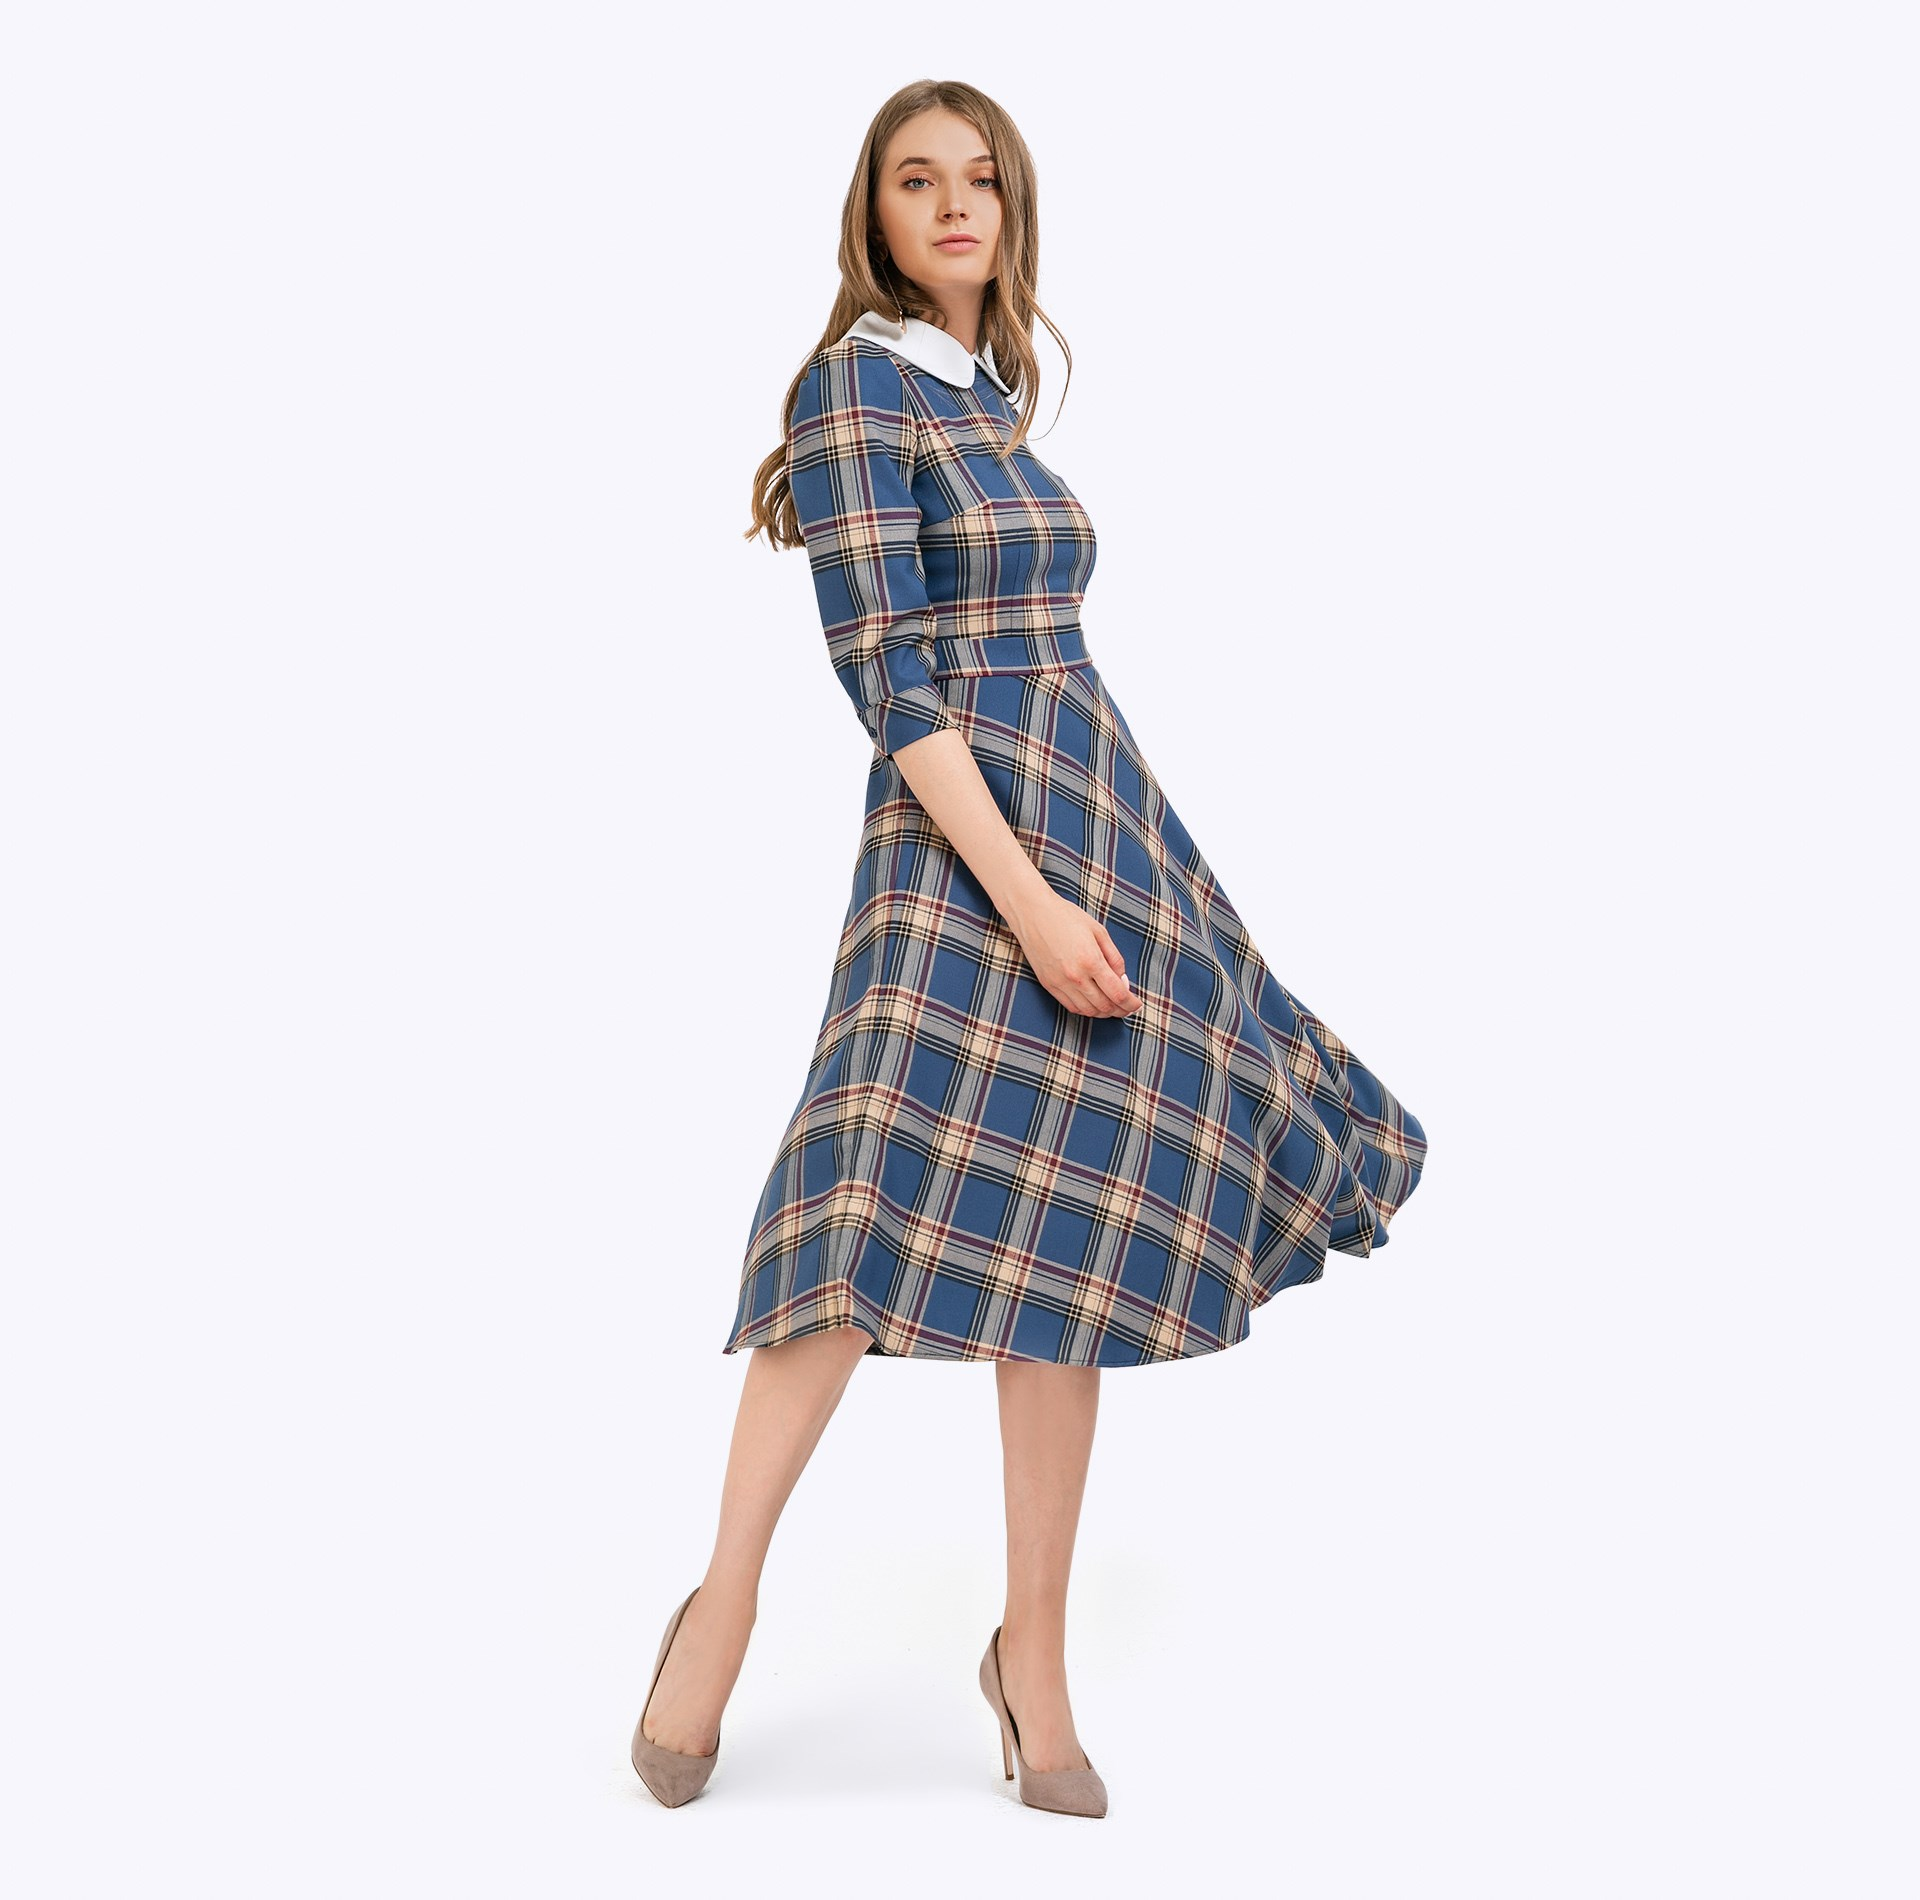 Slim dress plaid self belted button up plaid print dress